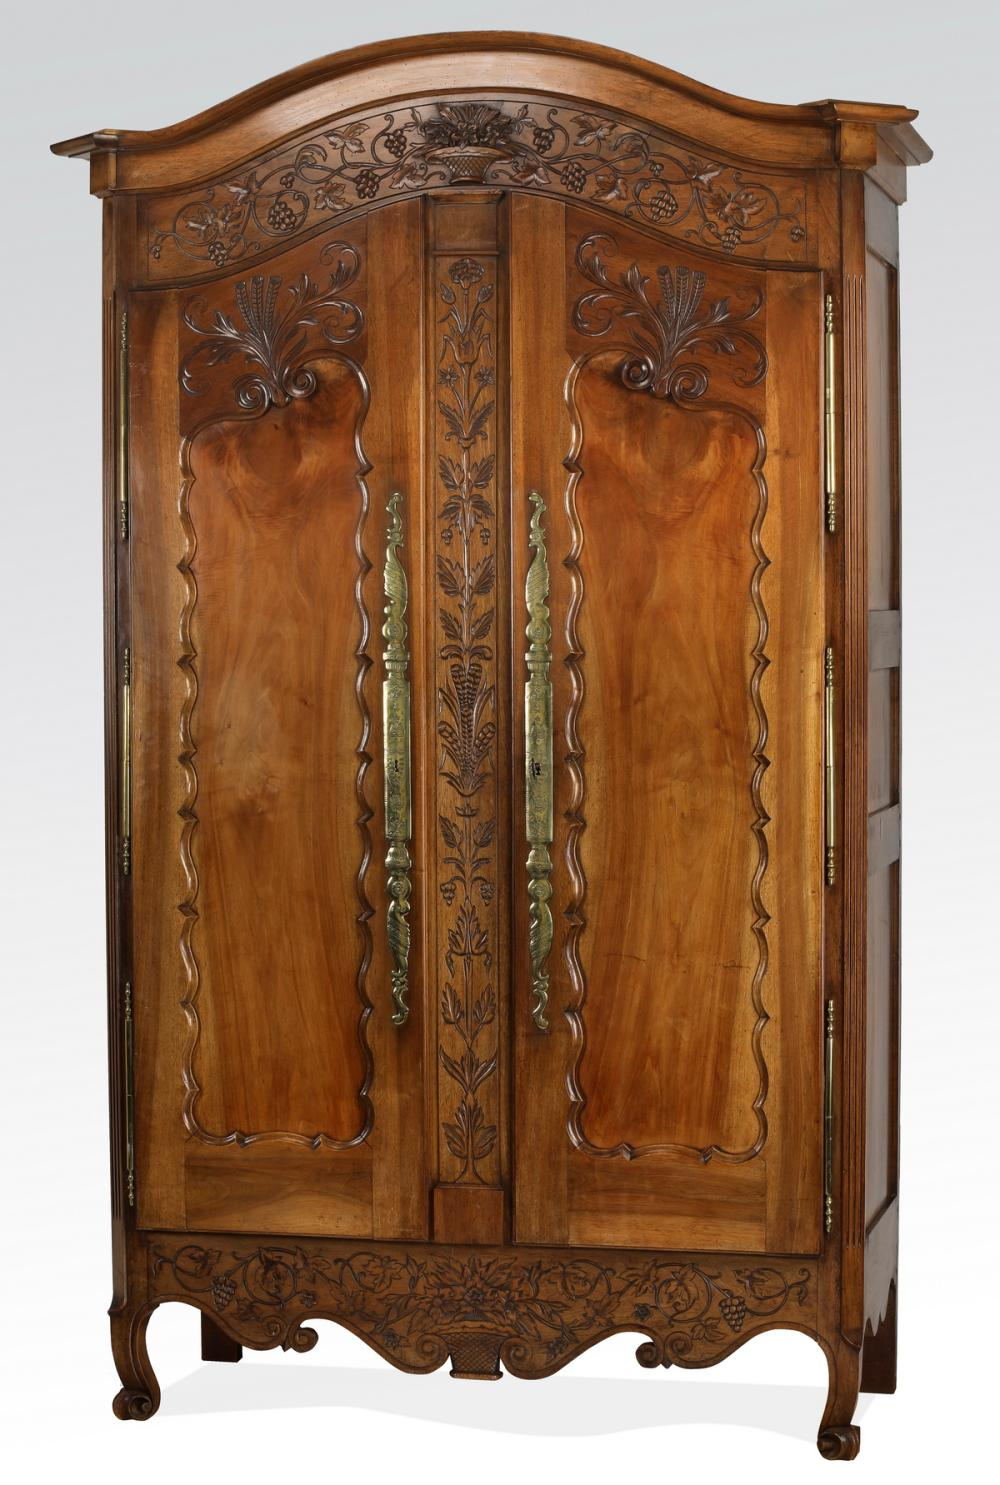 Mid 19th c. French walnut armoire w/ floral carvings